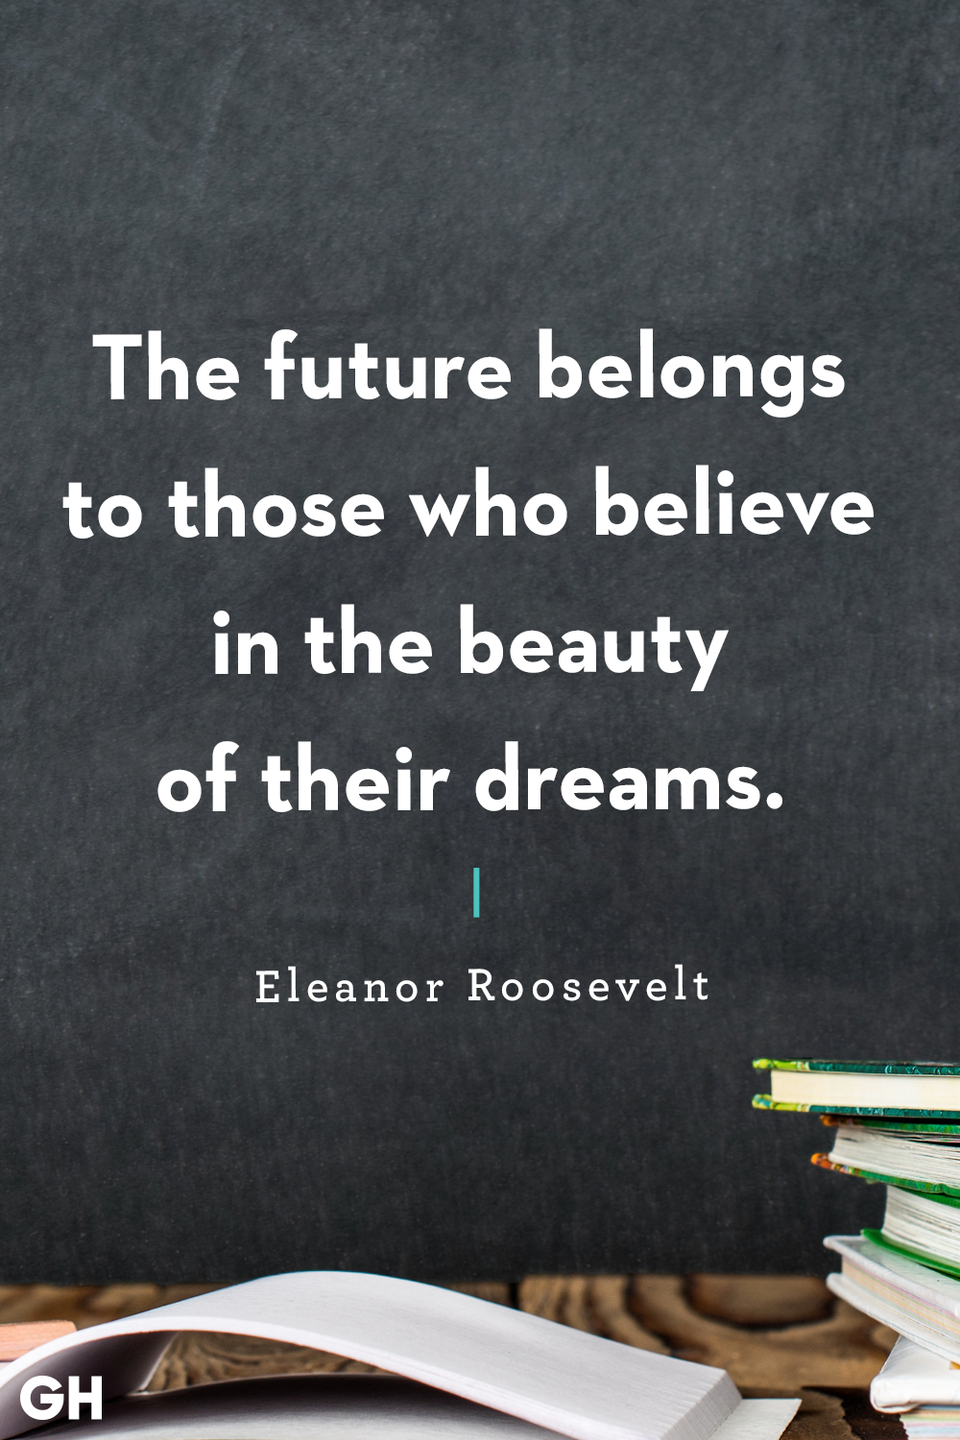 <p>The future belongs to those who believe in the beauty of their dreams.</p>